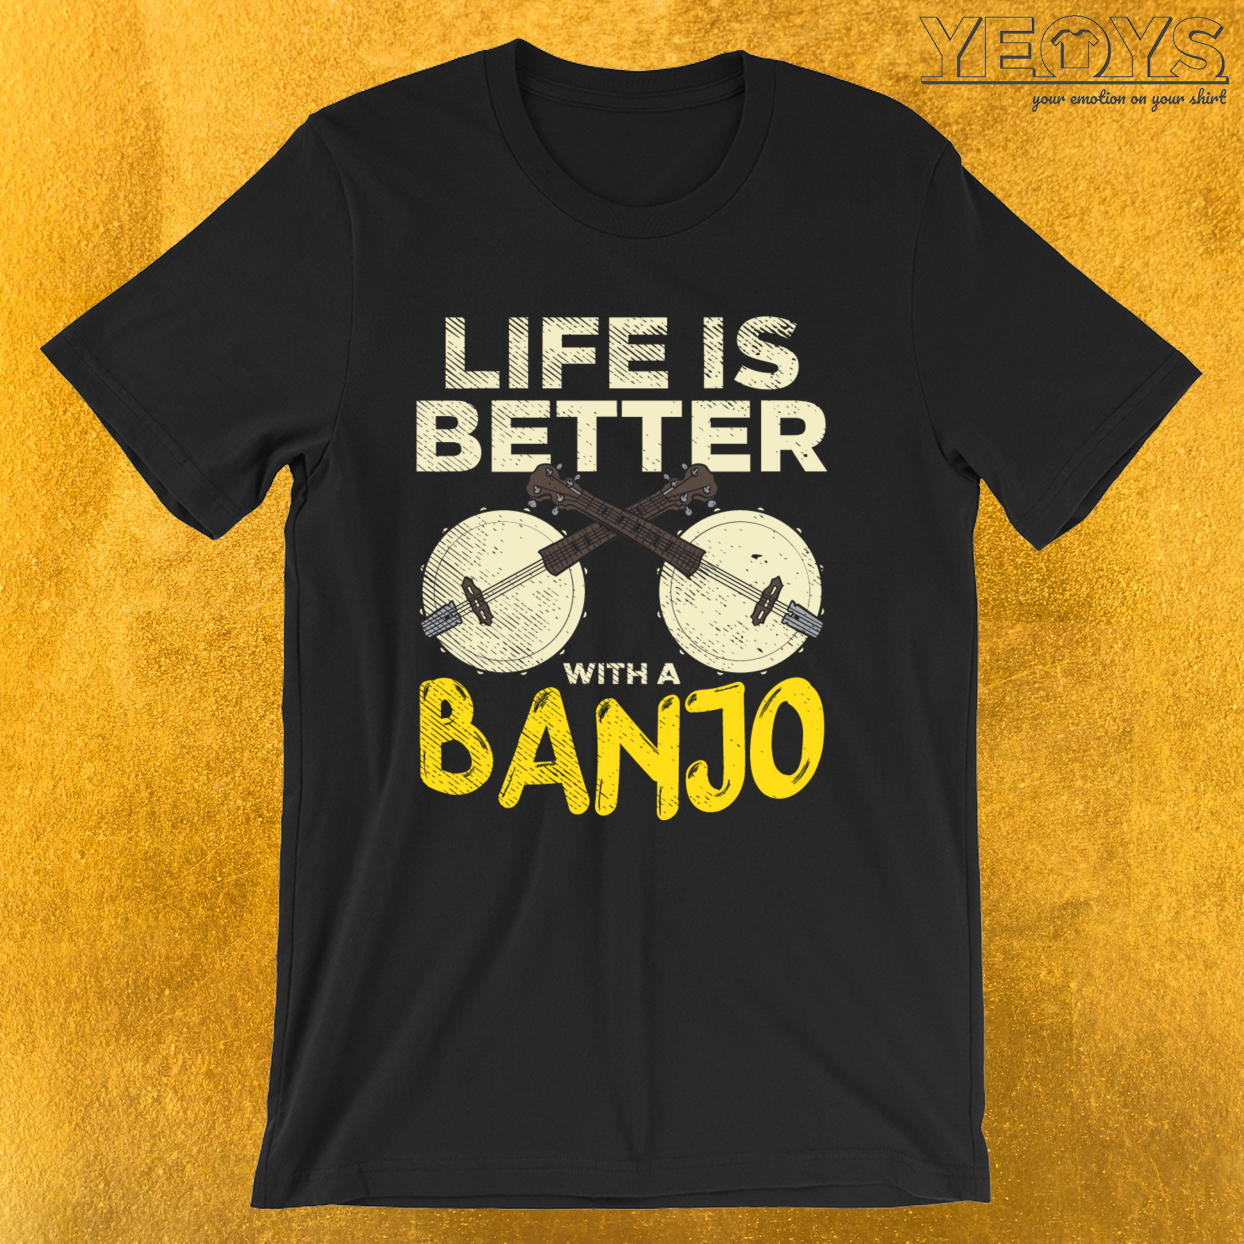 Life Is Better With A Banjo – Banjo Ukulele Tee